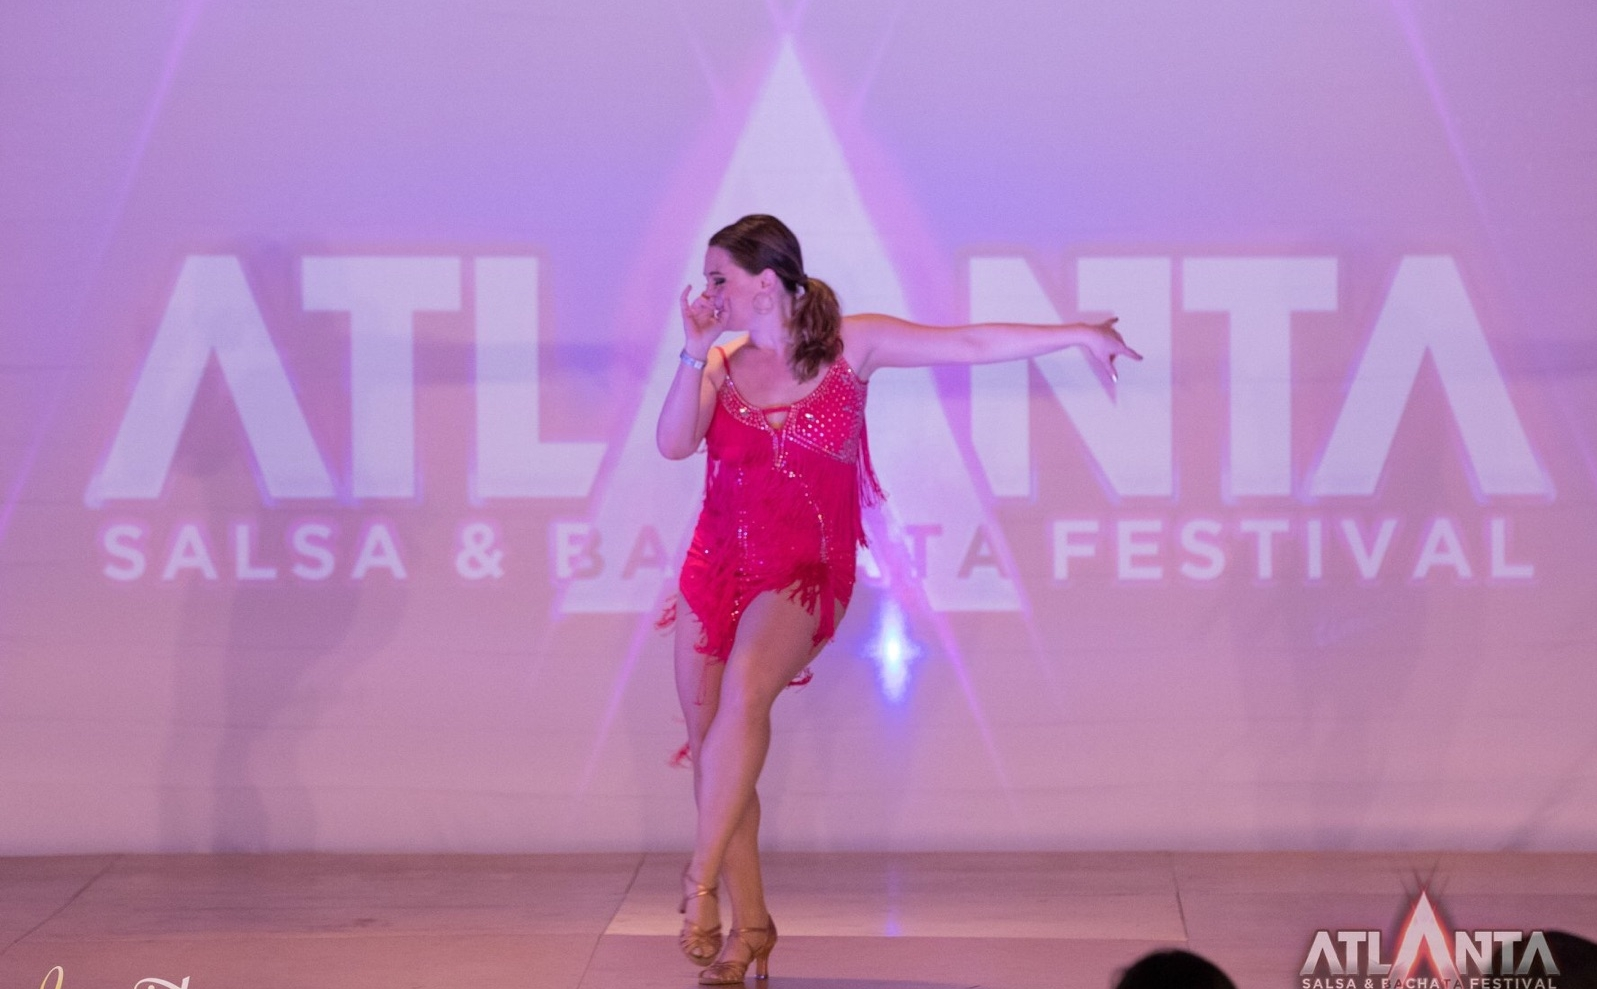 """""""Sofrito"""" Cha Cha Solo   Created at the end of 2017 and performed in 2018, """"Sofrito"""" is an elegant and sexy contemporary cha cha solo that I danced many times and had a blast. With cha cha being one of my favorite dances, I loved performing this multiple times at multiple places, including Atlanta Salsa Bachata Festival 2018, Atlanta Salsa Congress 2017, Sanctuary ATL, Mambo Mayhem Social, and Dancer's Paradise Social."""